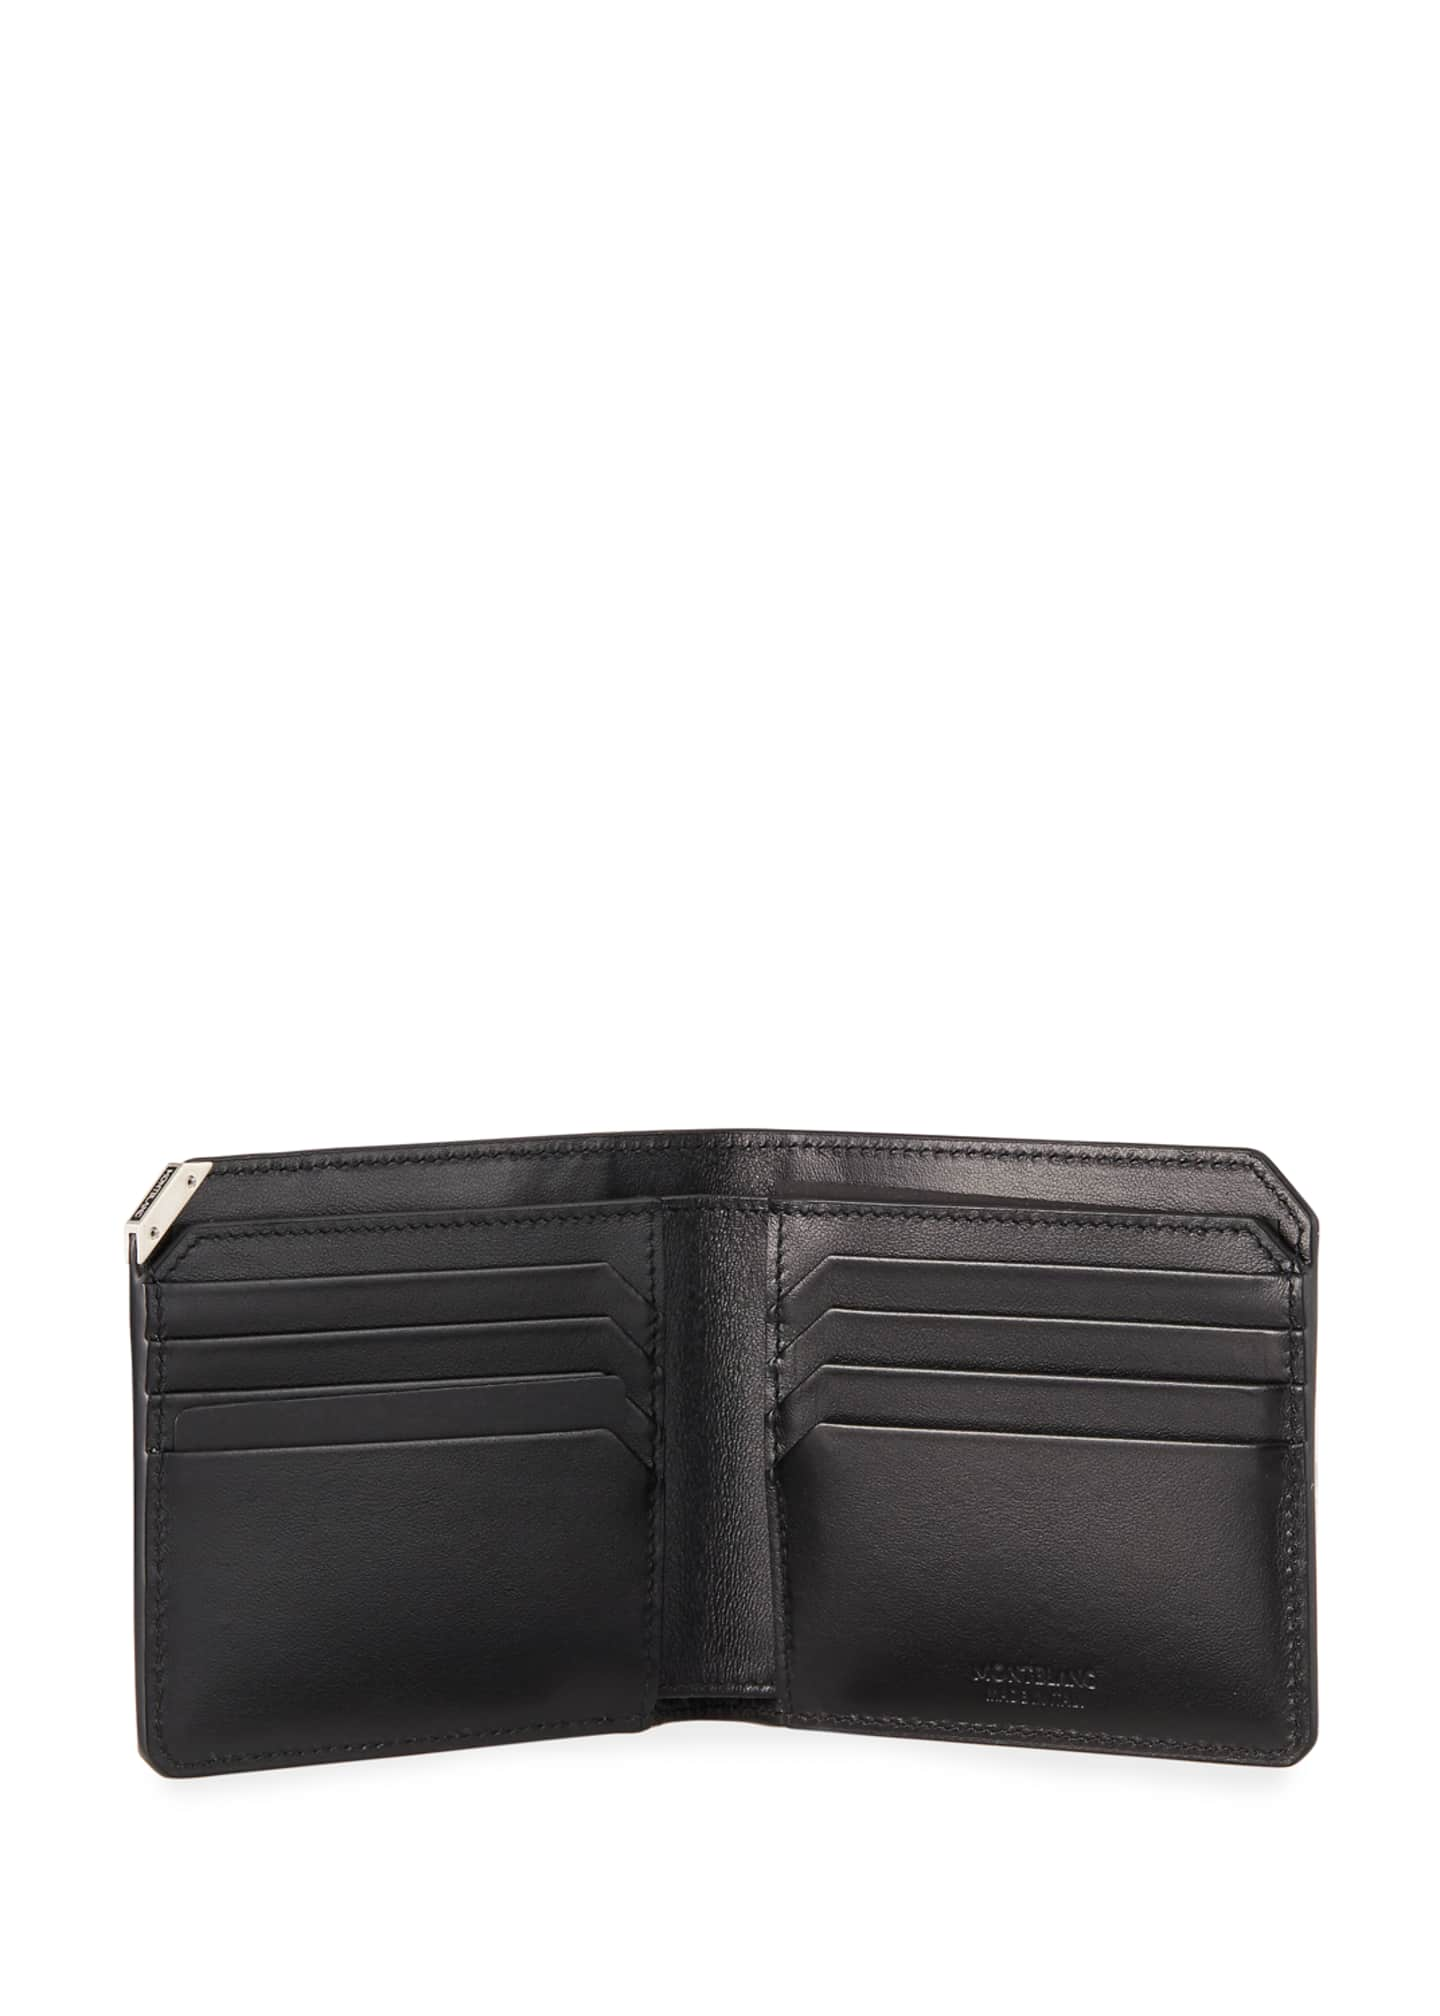 Image 2 of 2: Men's Meisterstuck Urban Full-Grain Leather Wallet